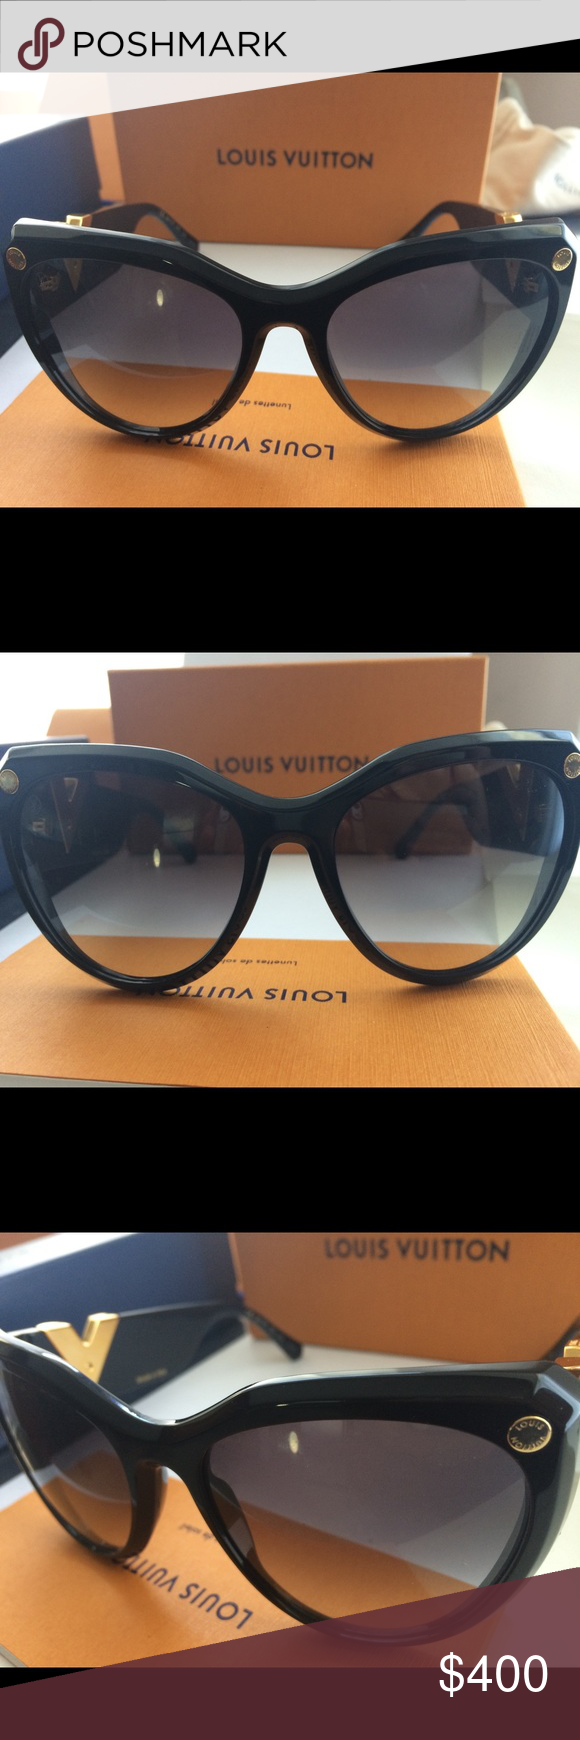 fc8fdad35fc97 (My Fair Lady) Color Black. Got it for my birthday. Brand new. Any  questions comment below Louis Vuitton Accessories Glasses